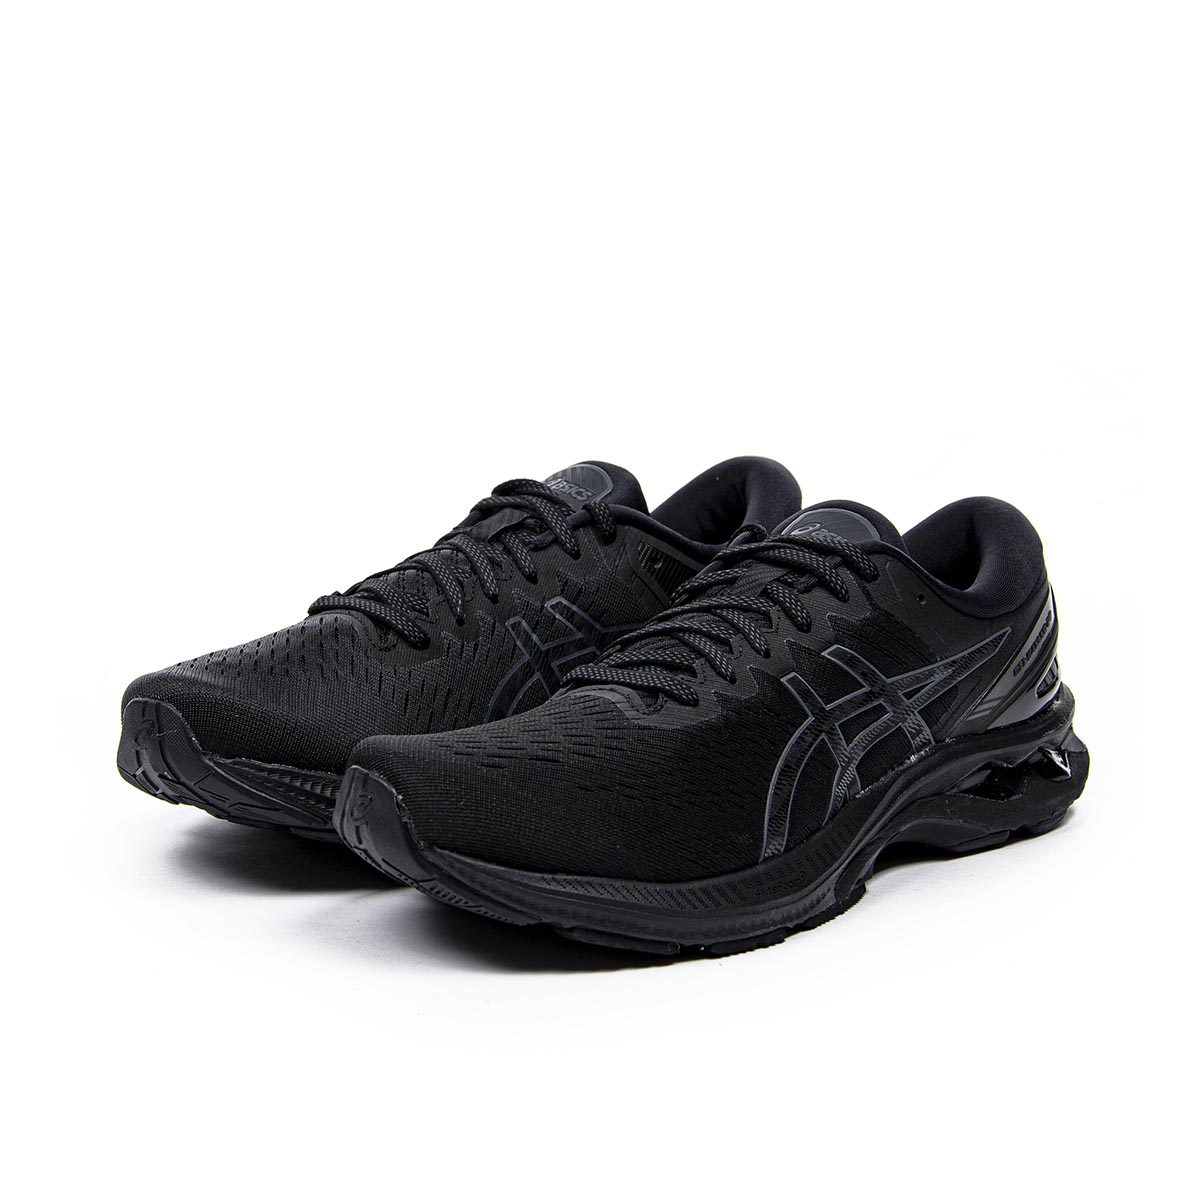 ASICS - GEL-KAYANO 27